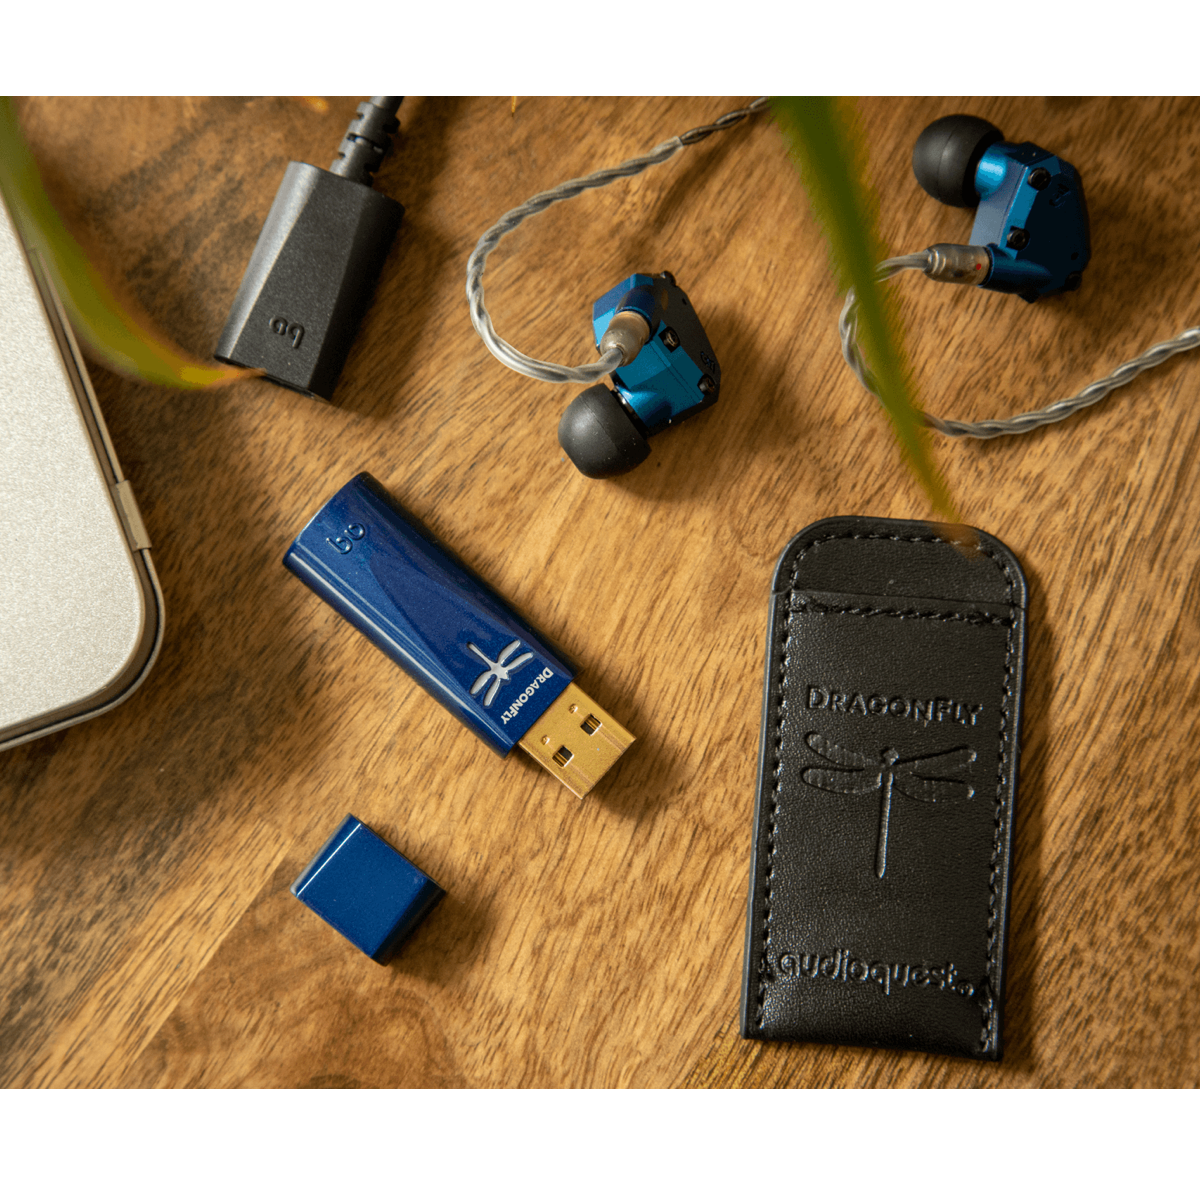 AudioQuest Dragonfly Cobalt - USB DAC + Preamp + Headphone Amplifier - AVStore.in